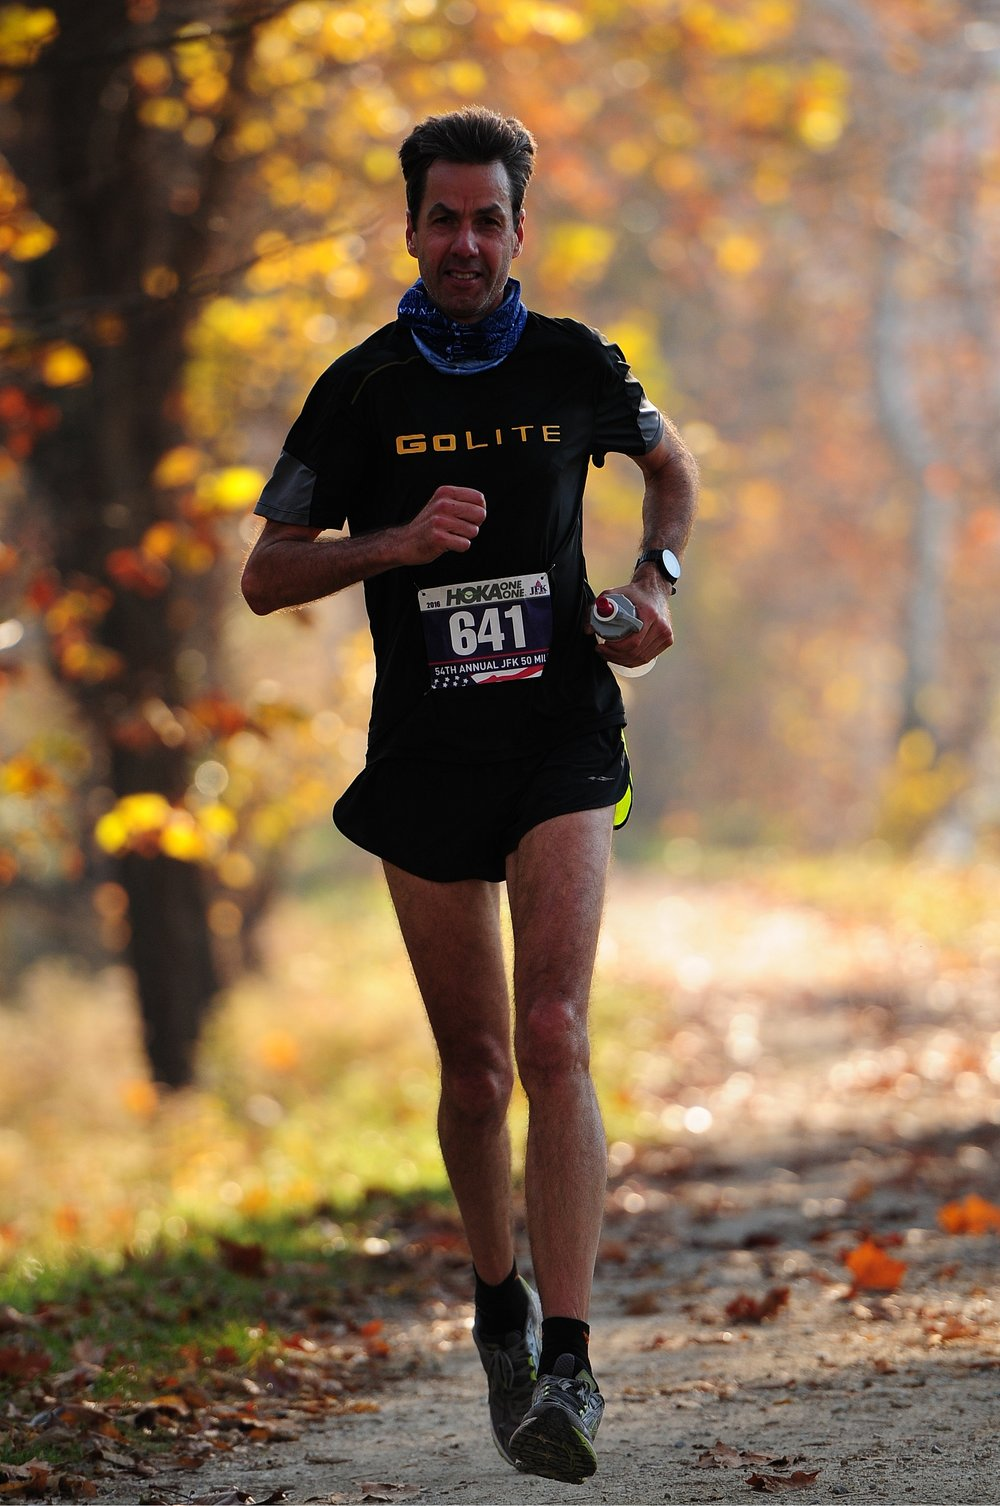 Stefan sporting the flash on his way to a great jfk 50 mile finish